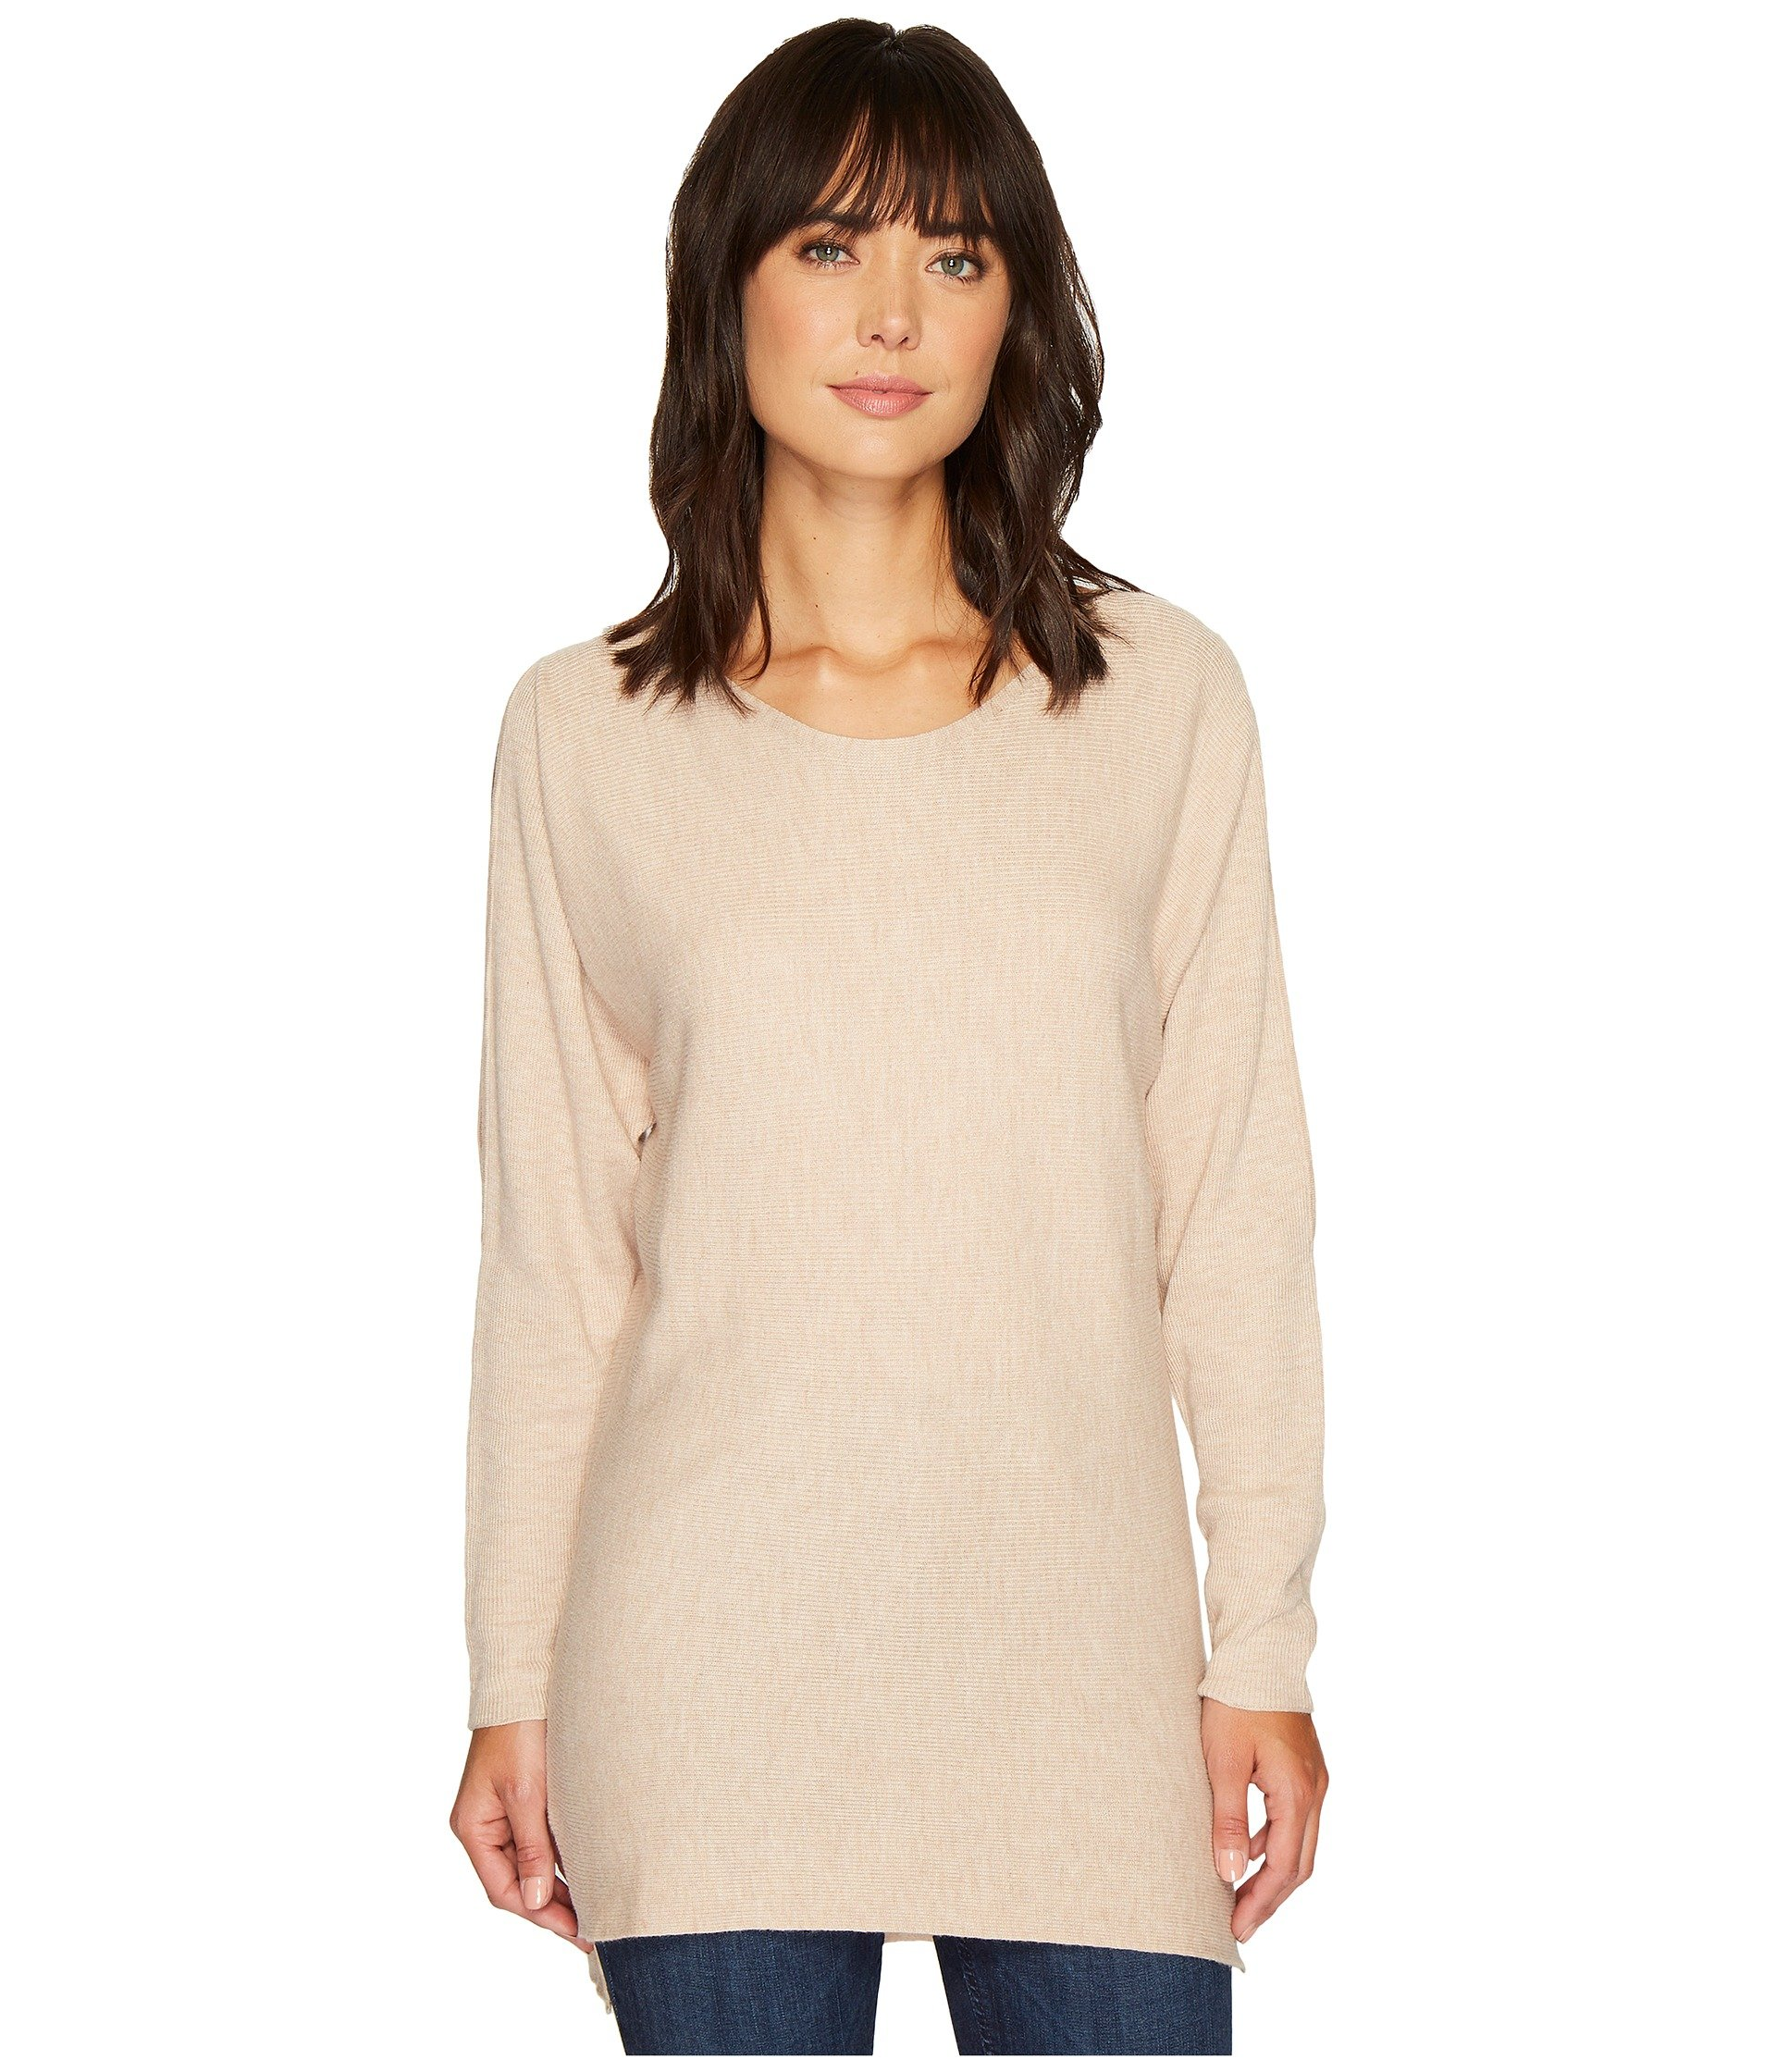 Sweaters, Women, Tunics | Shipped Free at Zappos